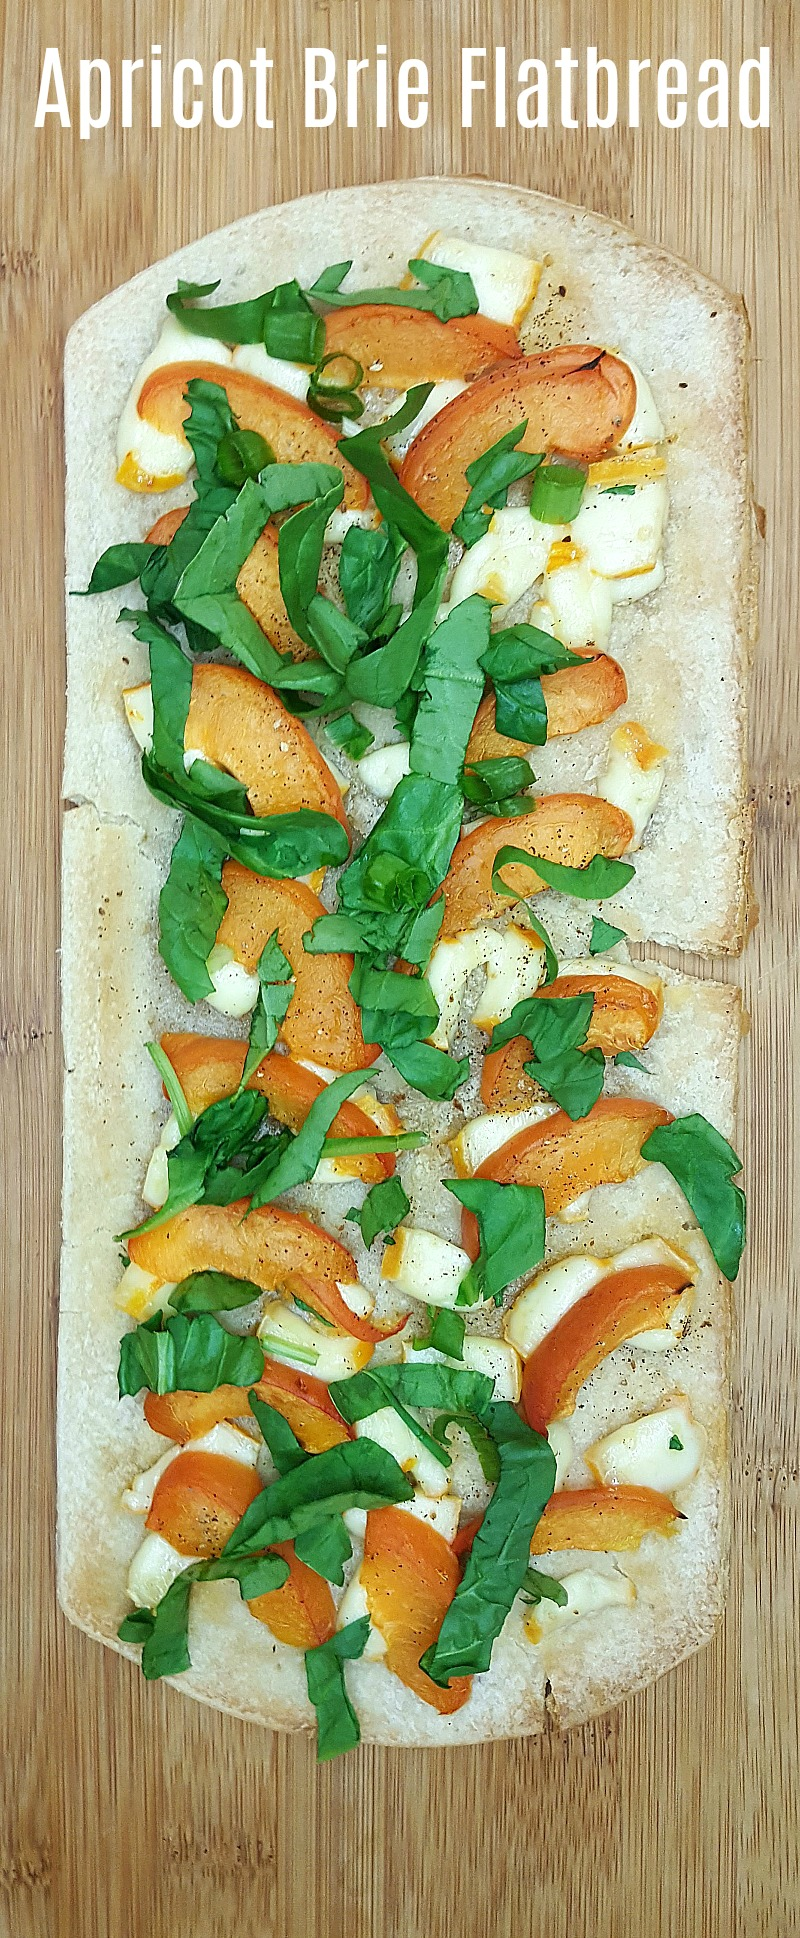 Apricot Brie Flatbread Recipe - A flatbread pizza with the goodness of fresh Summer fruit